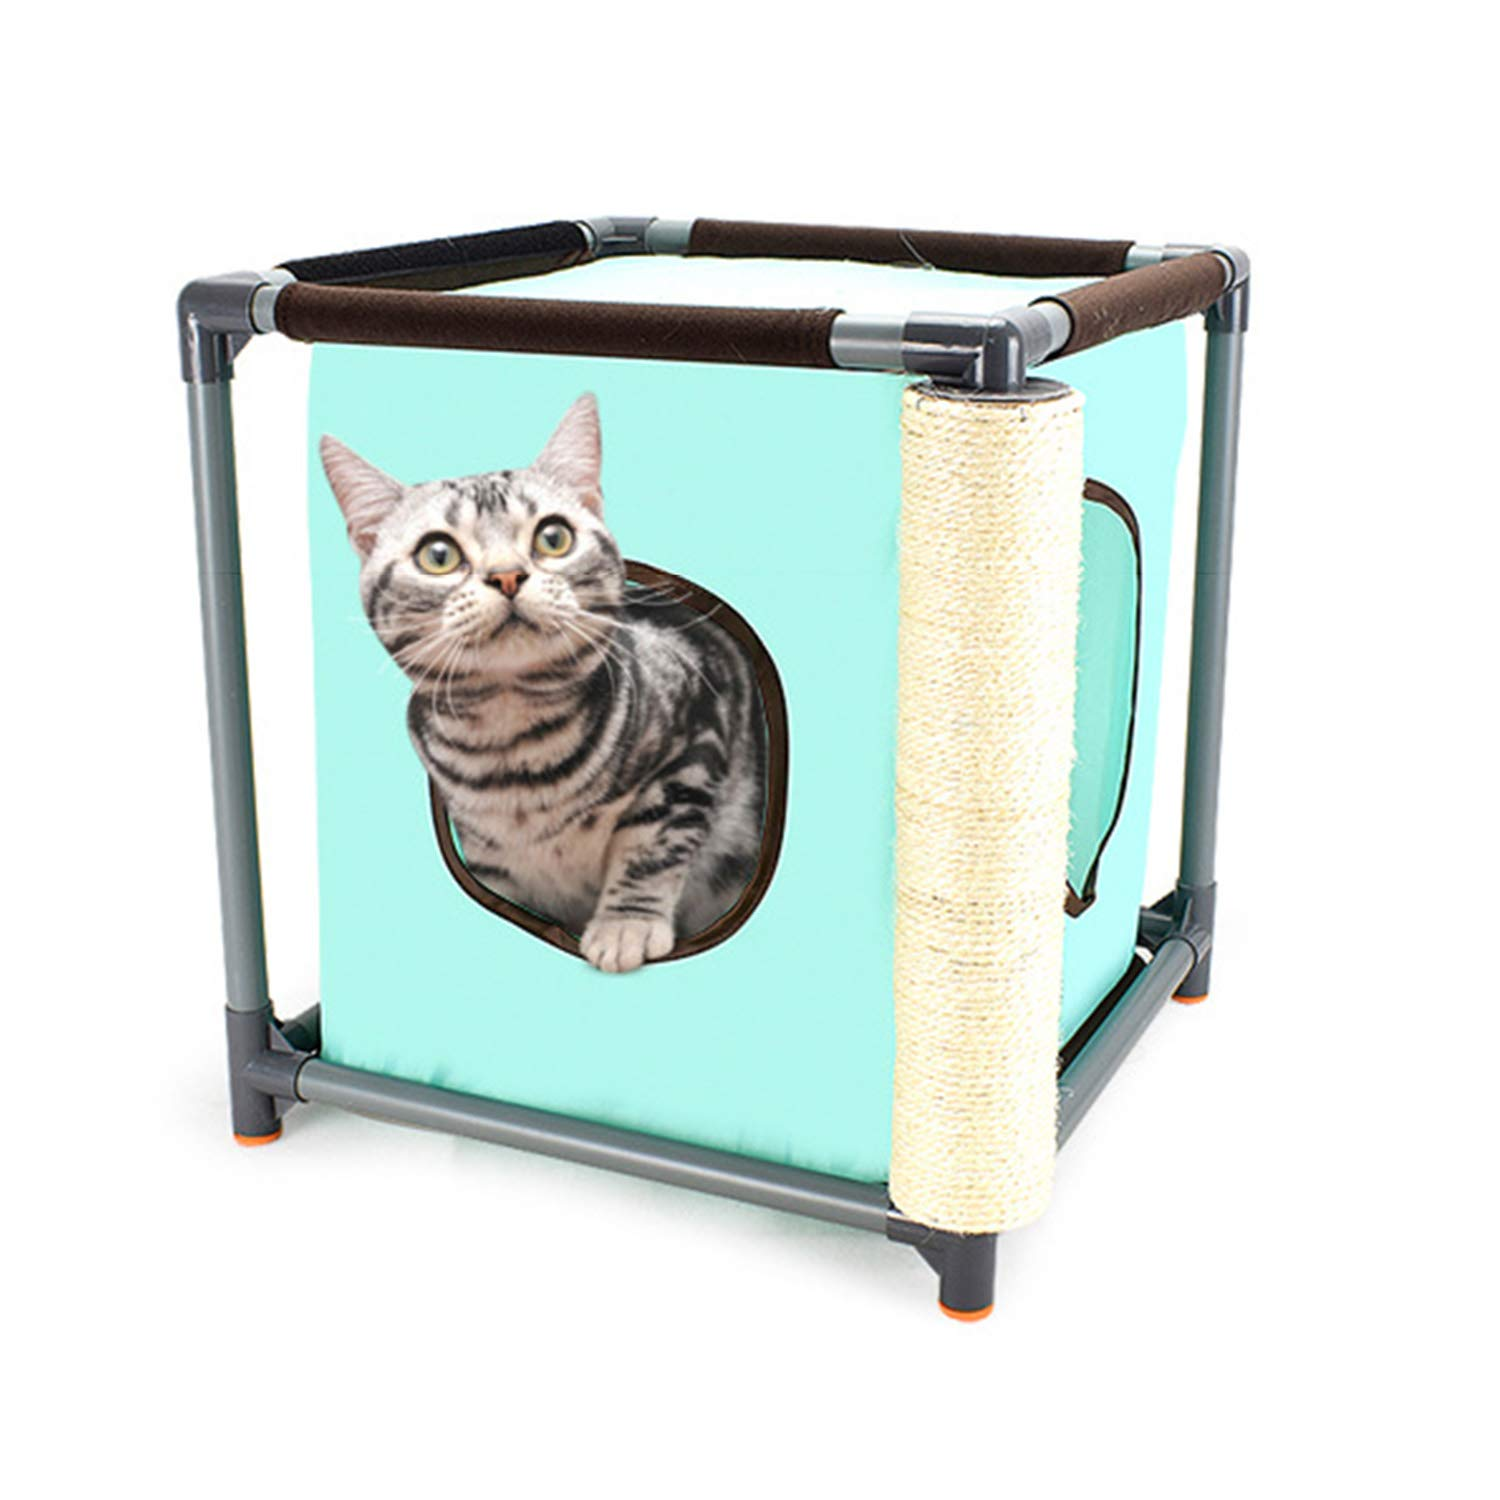 Detachable Combination Cat Litter Creative Cat Climbing Frame Oxford Cat Tunnel Grinding Claw Toy Cat Furniture 41X41X43cm